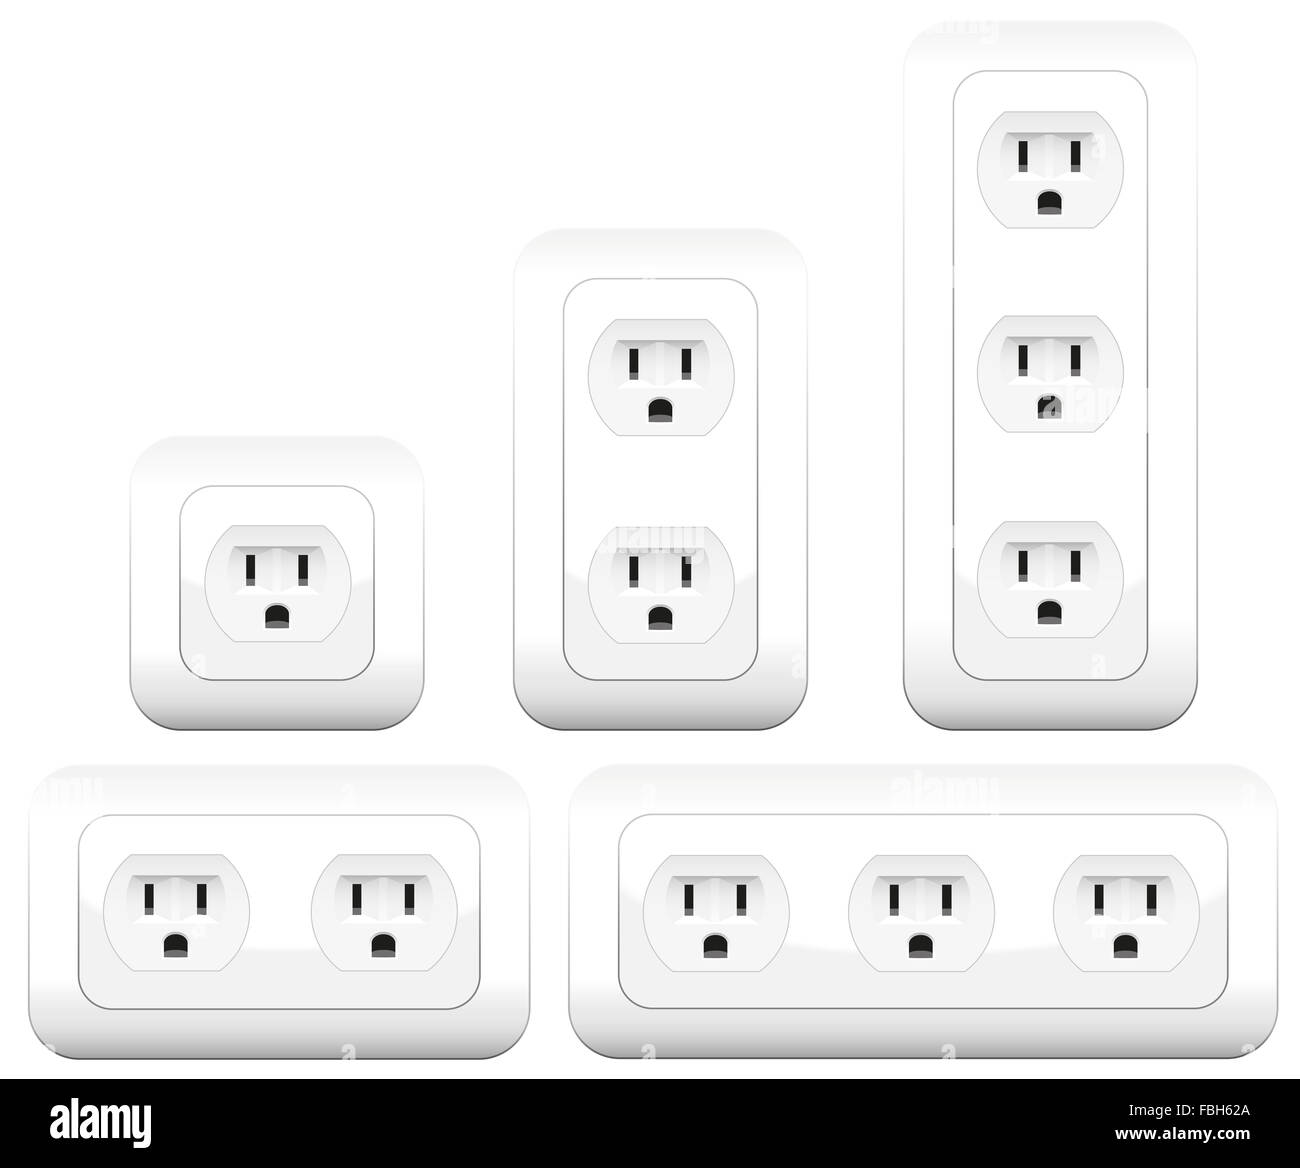 Socket variations - double and triple outlets. Illustration on white background. - Stock Image